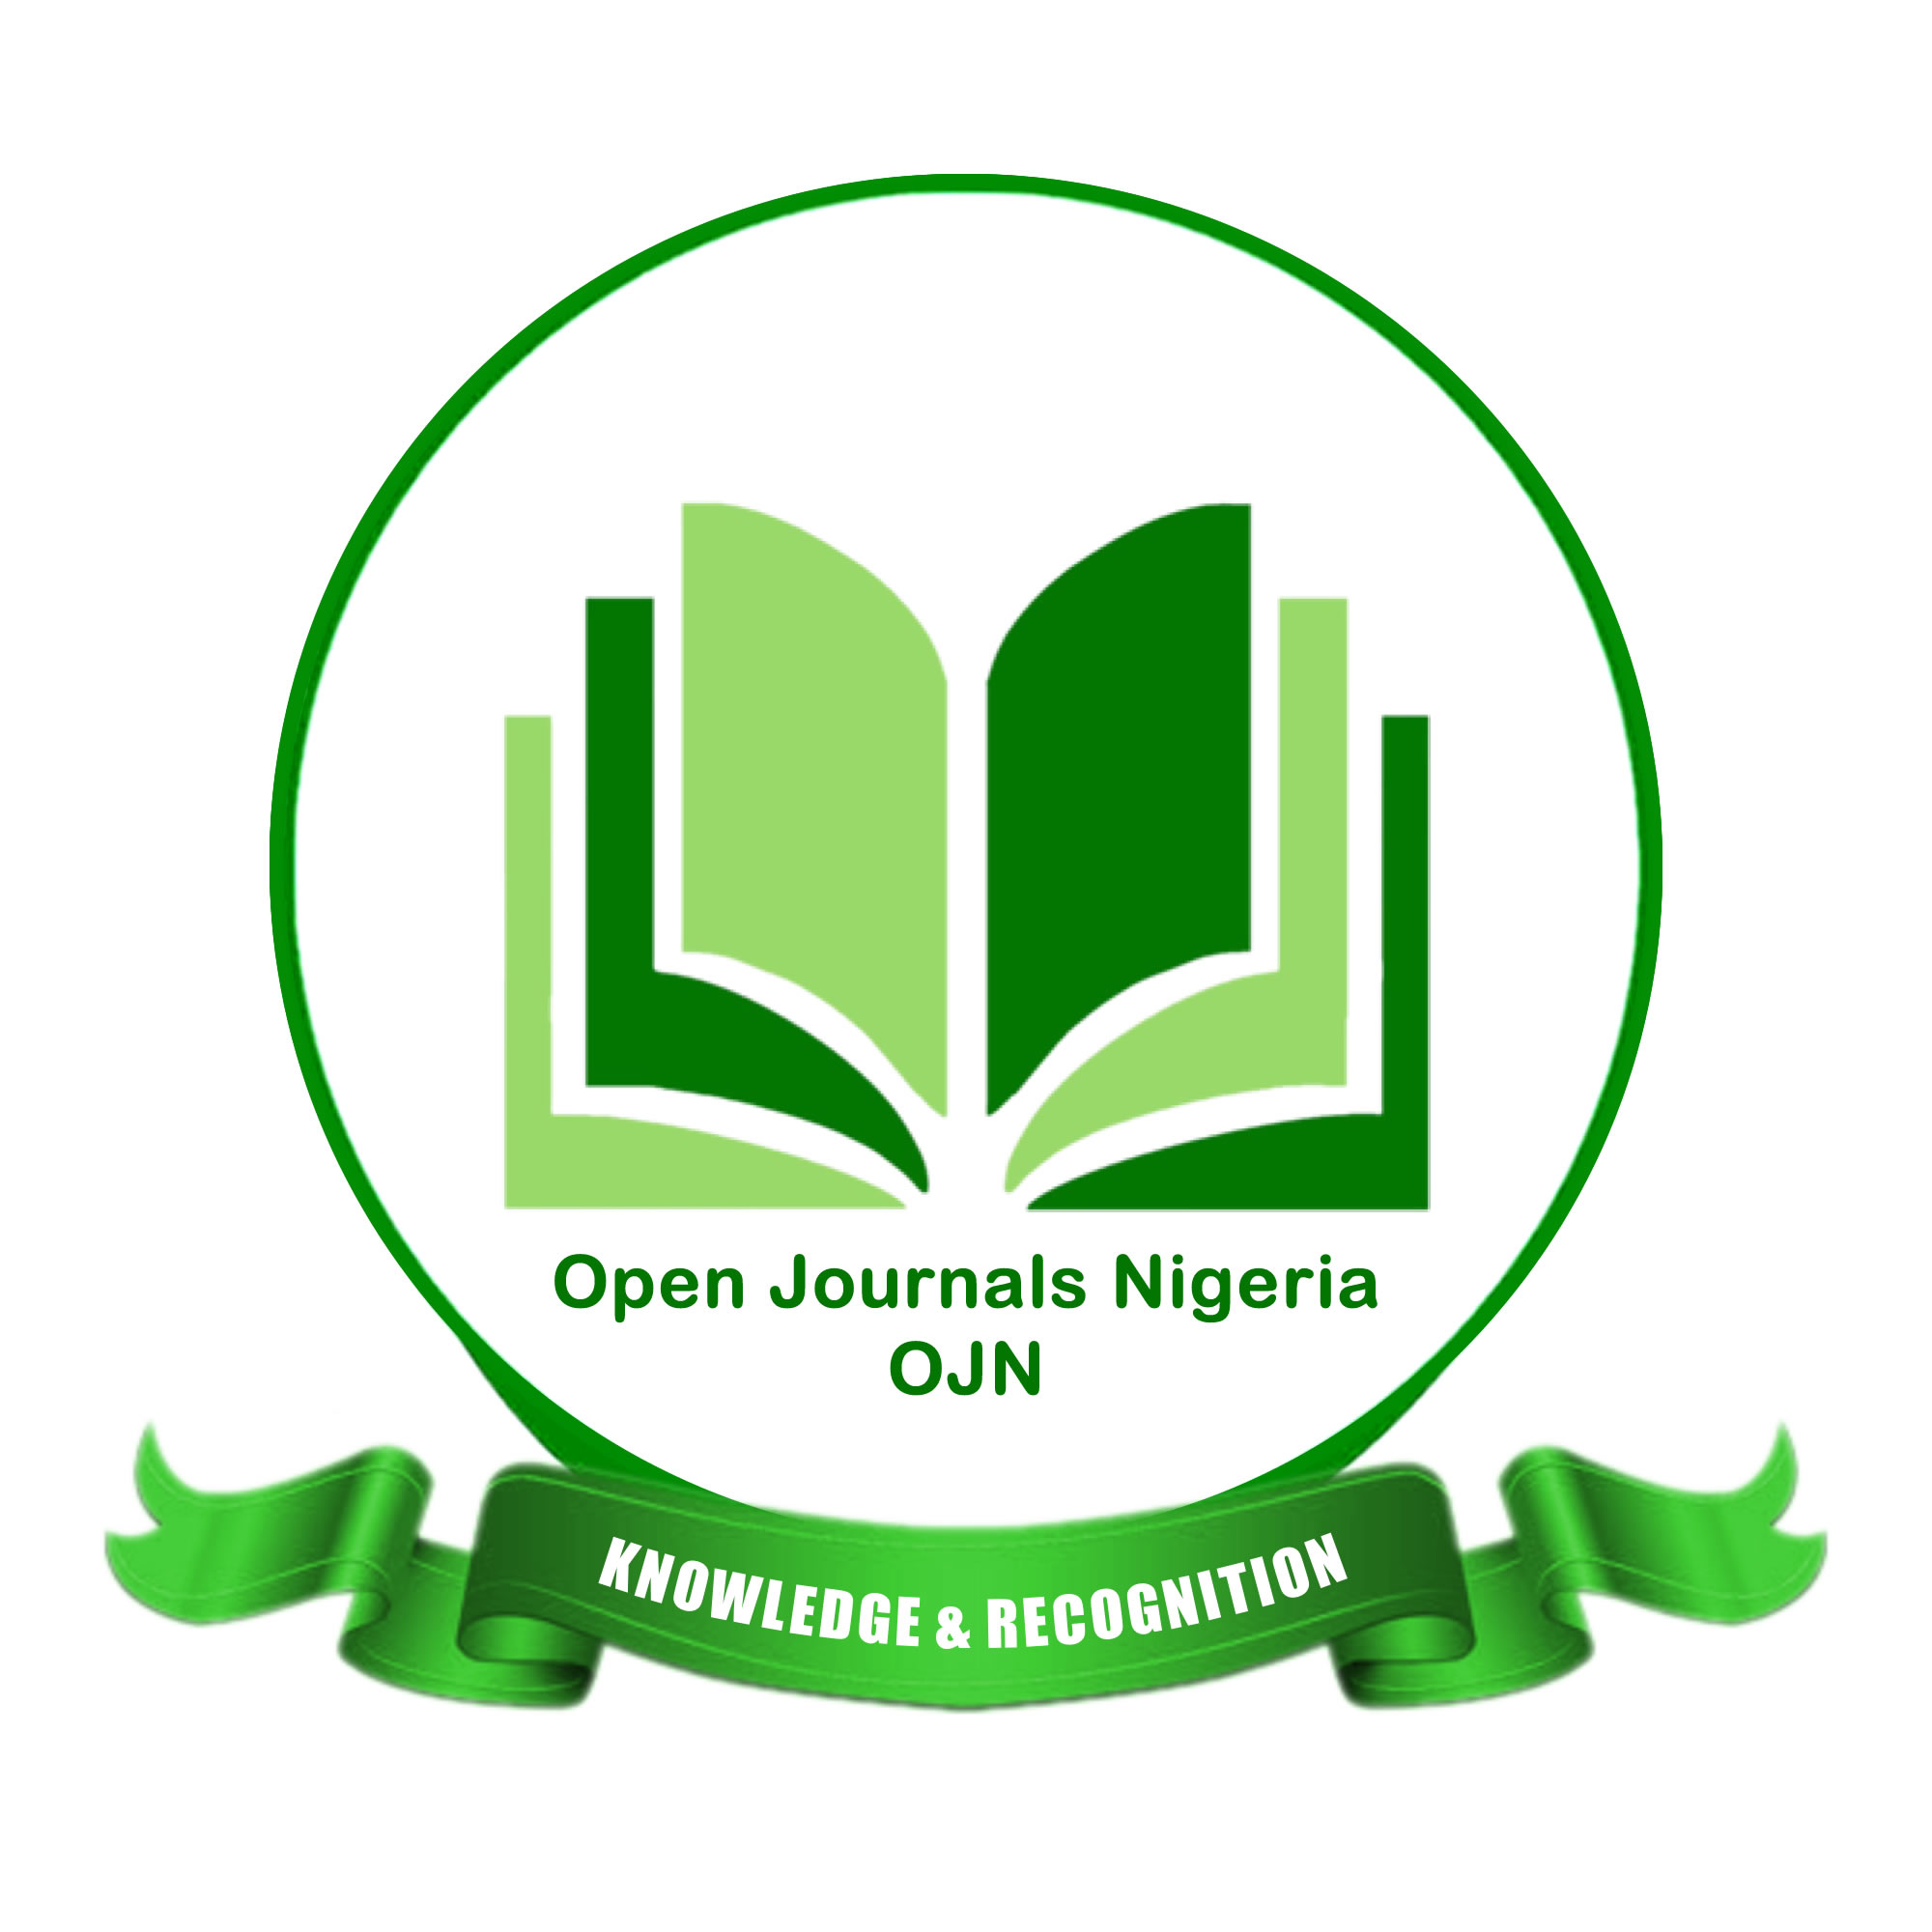 Open Journals Nigeria (OJN)